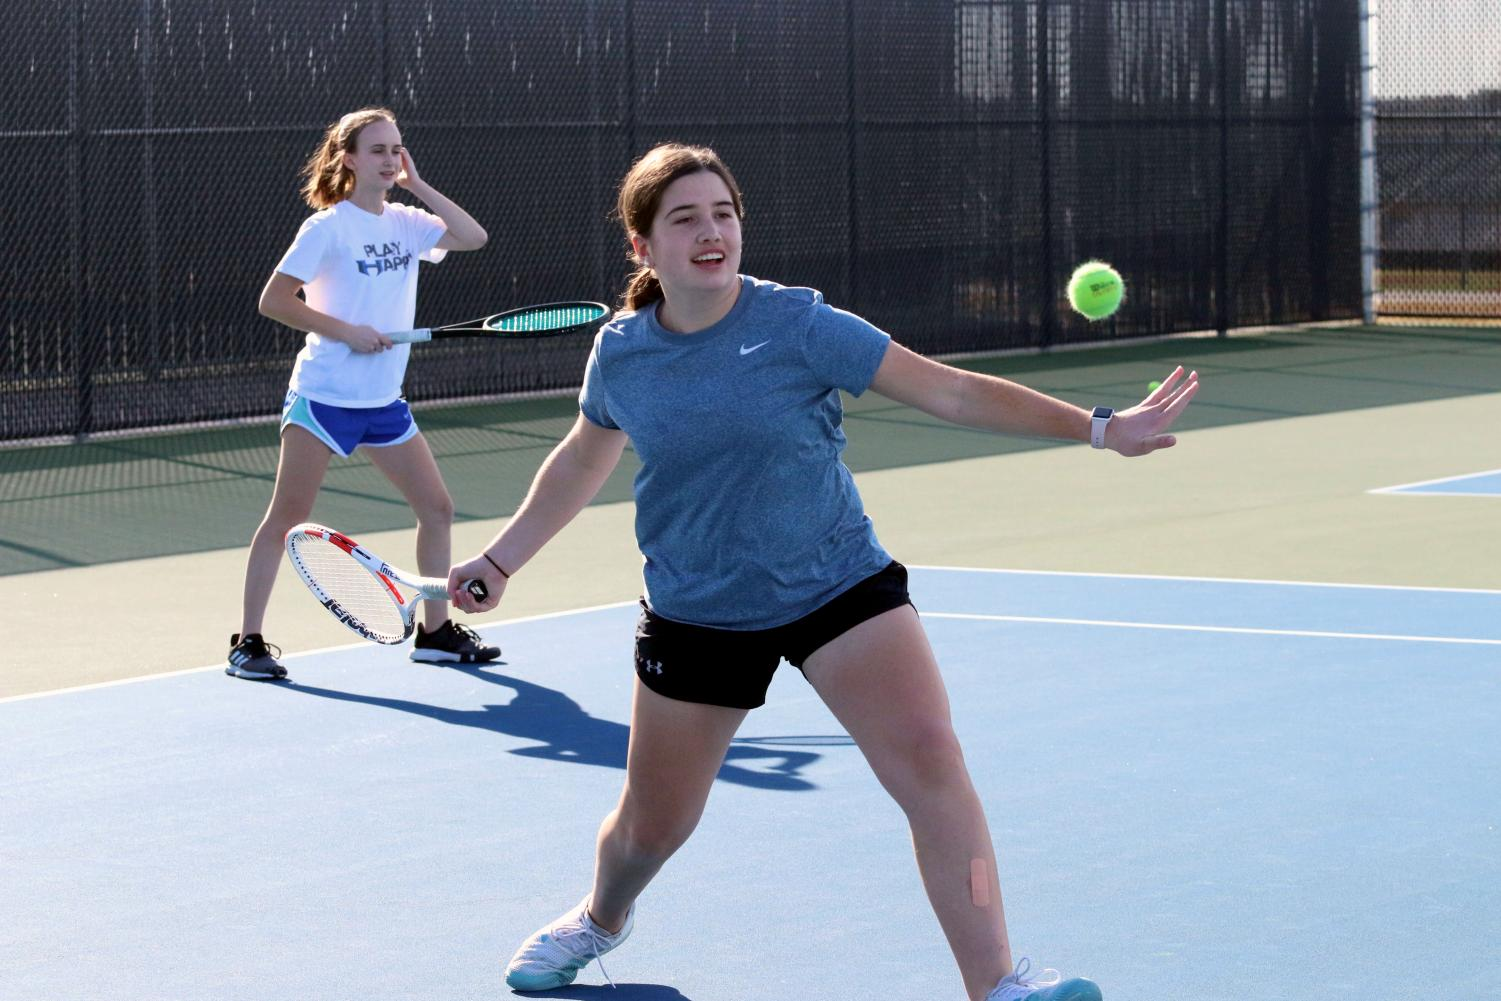 Freshman Macie Snyder hits a forehand return during practice. Snyder